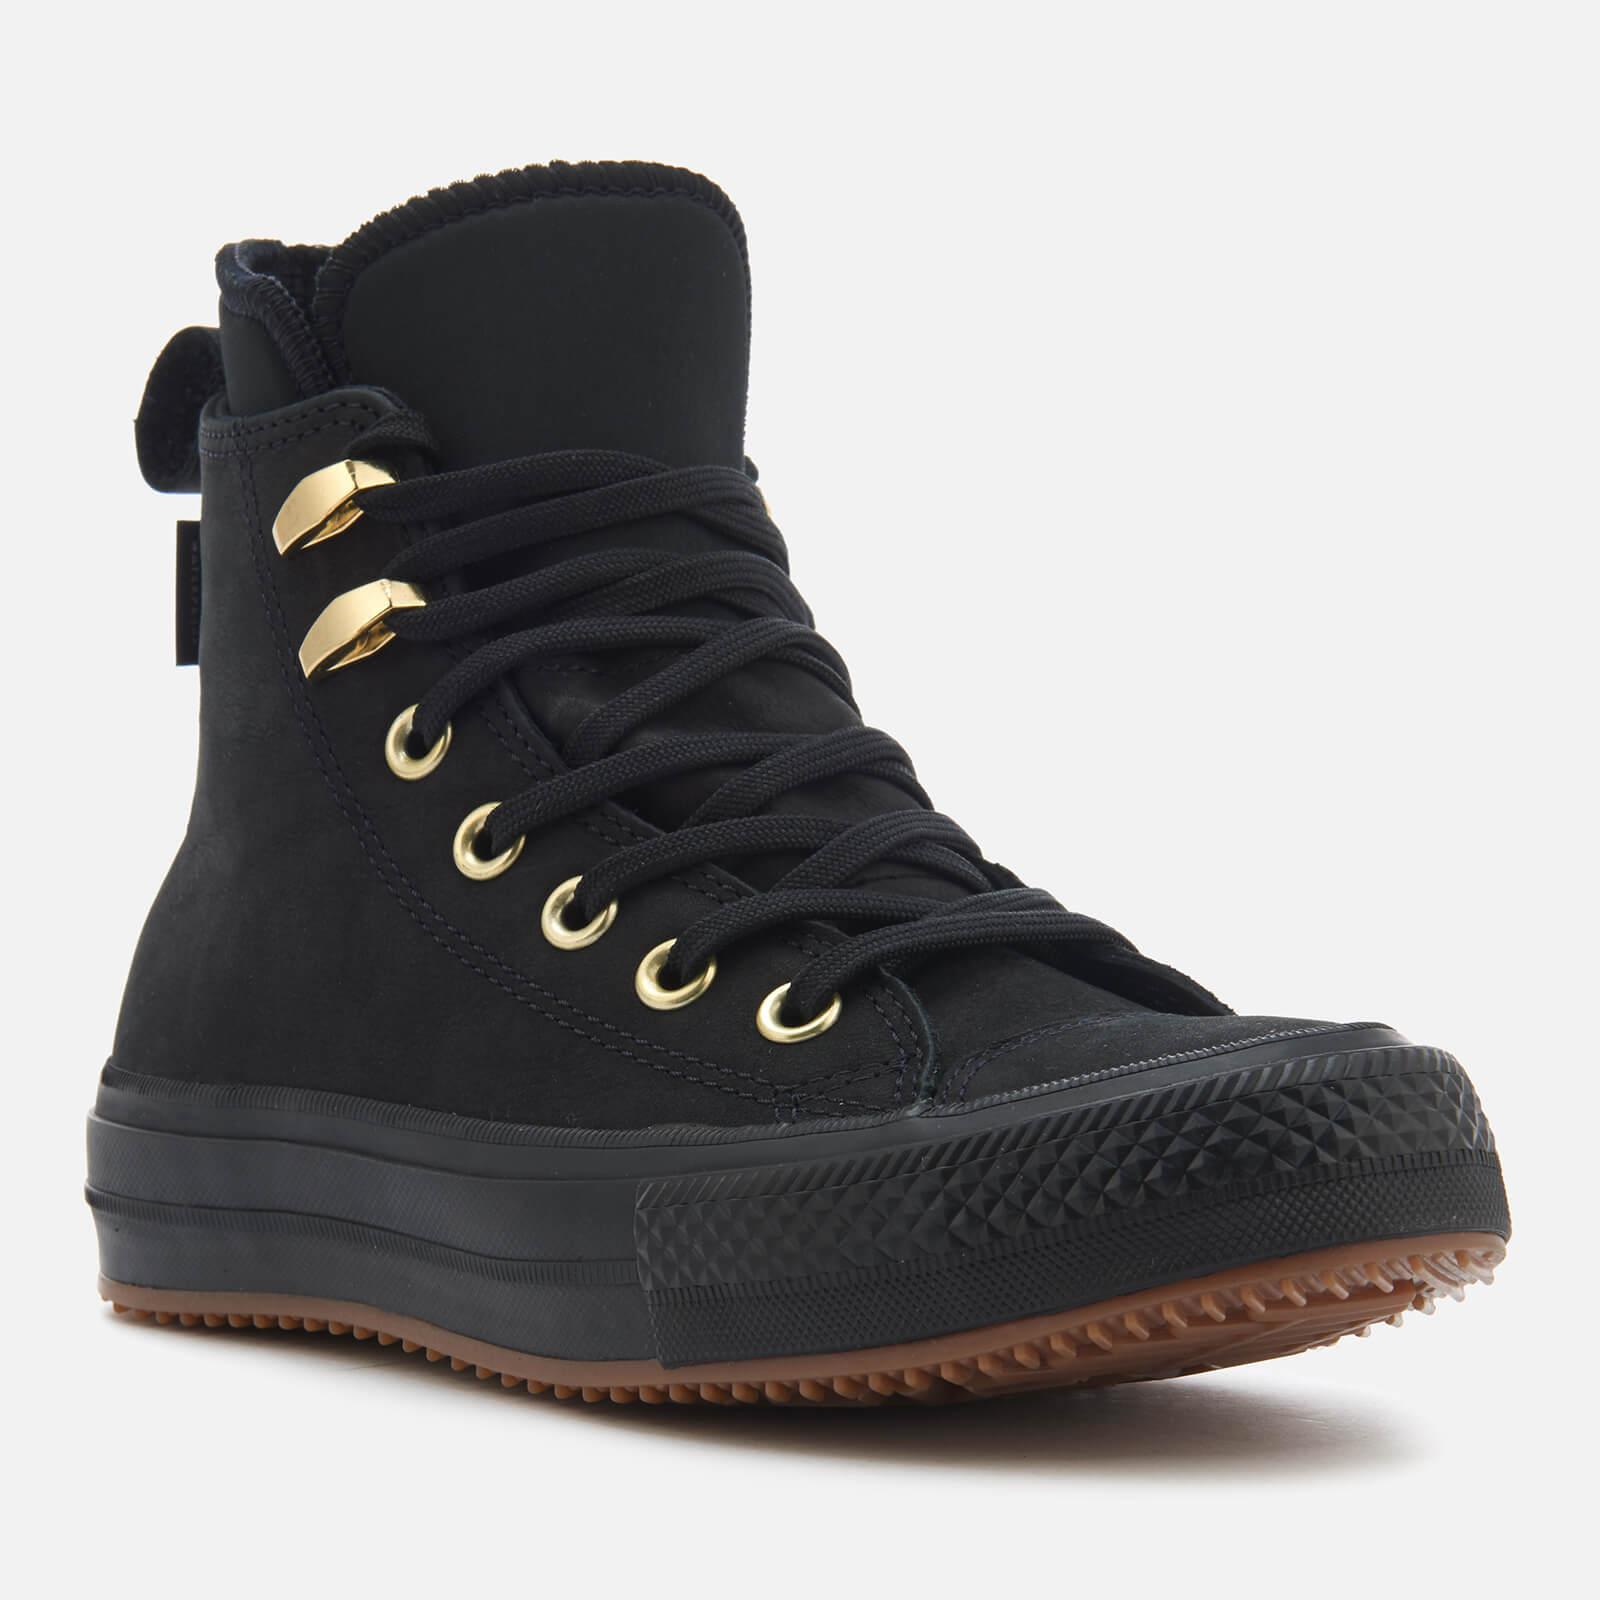 Converse - Black Chuck Taylor All Star Waterproof Boots - Lyst. View  fullscreen 0321ab896